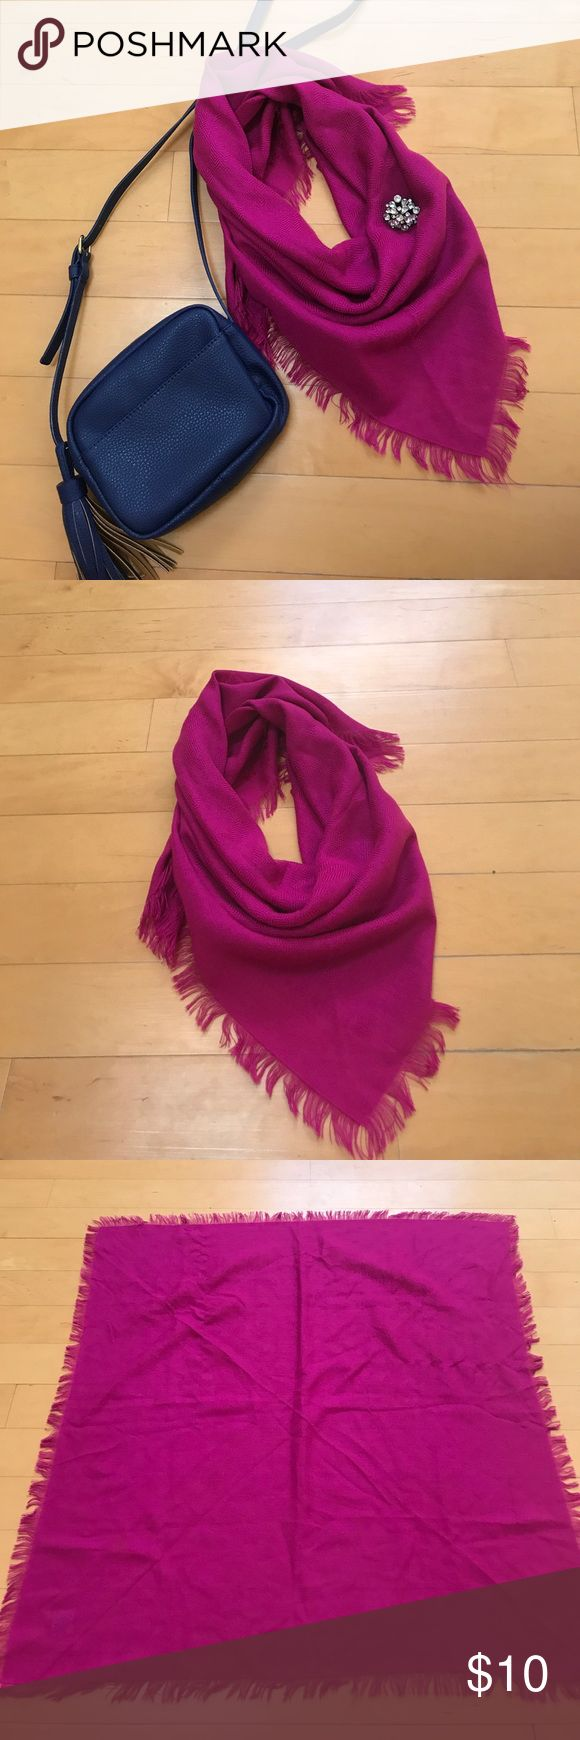 """Vintage Magenta Fringed Scarf I'm not sure exactly how old this is, but it was found in my grandmother's closet and she said she'd had it for """"awhile."""" My guess is it's from the 80s. Beautiful, bold color that is a fun accent. I loved pairing this with navy. 31"""" square, including the fringed edges. There are a couple of snags in the material, but not noticeable when it's worn. 100% acrylic material that's not too heavy or too light. It has a subtle woven checker board pattern. Vintage…"""